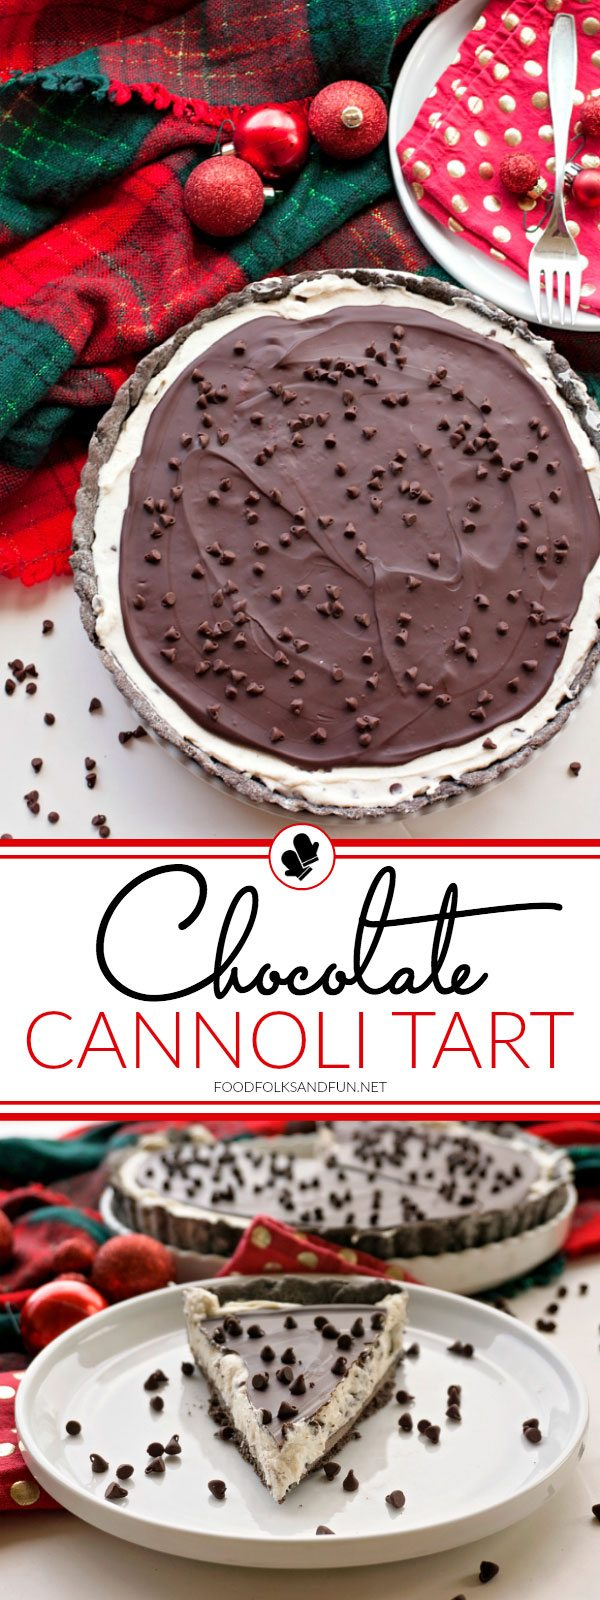 This Chocolate Cannoli Tart has all the luscious flavor of a chocolate cannoli in an easy to make recipe. It's all dressed up and perfect for holiday entertaining or any time of the year.